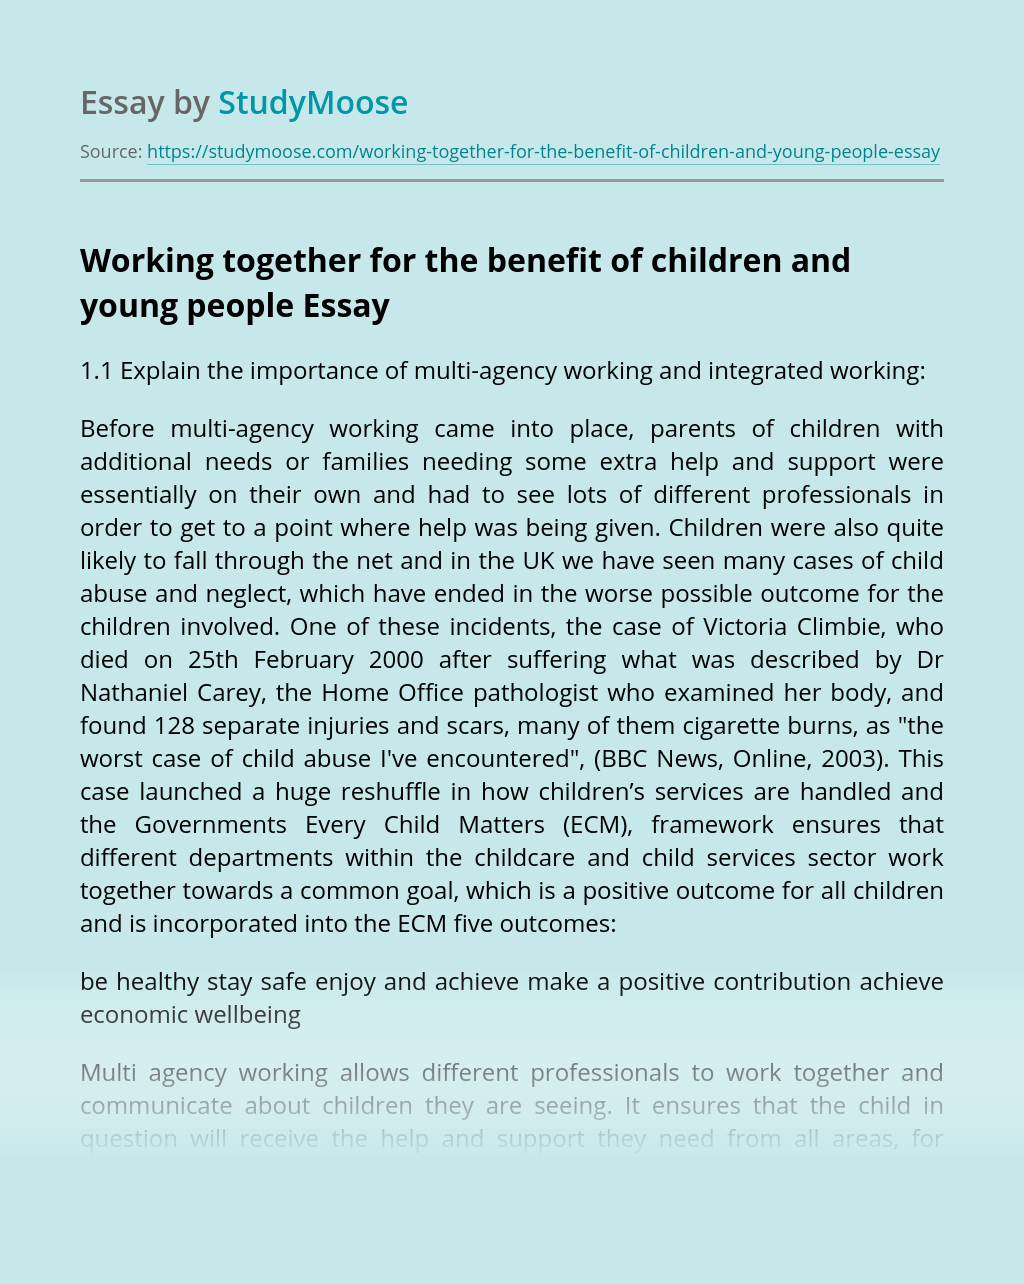 Working together for the benefit of children and young people